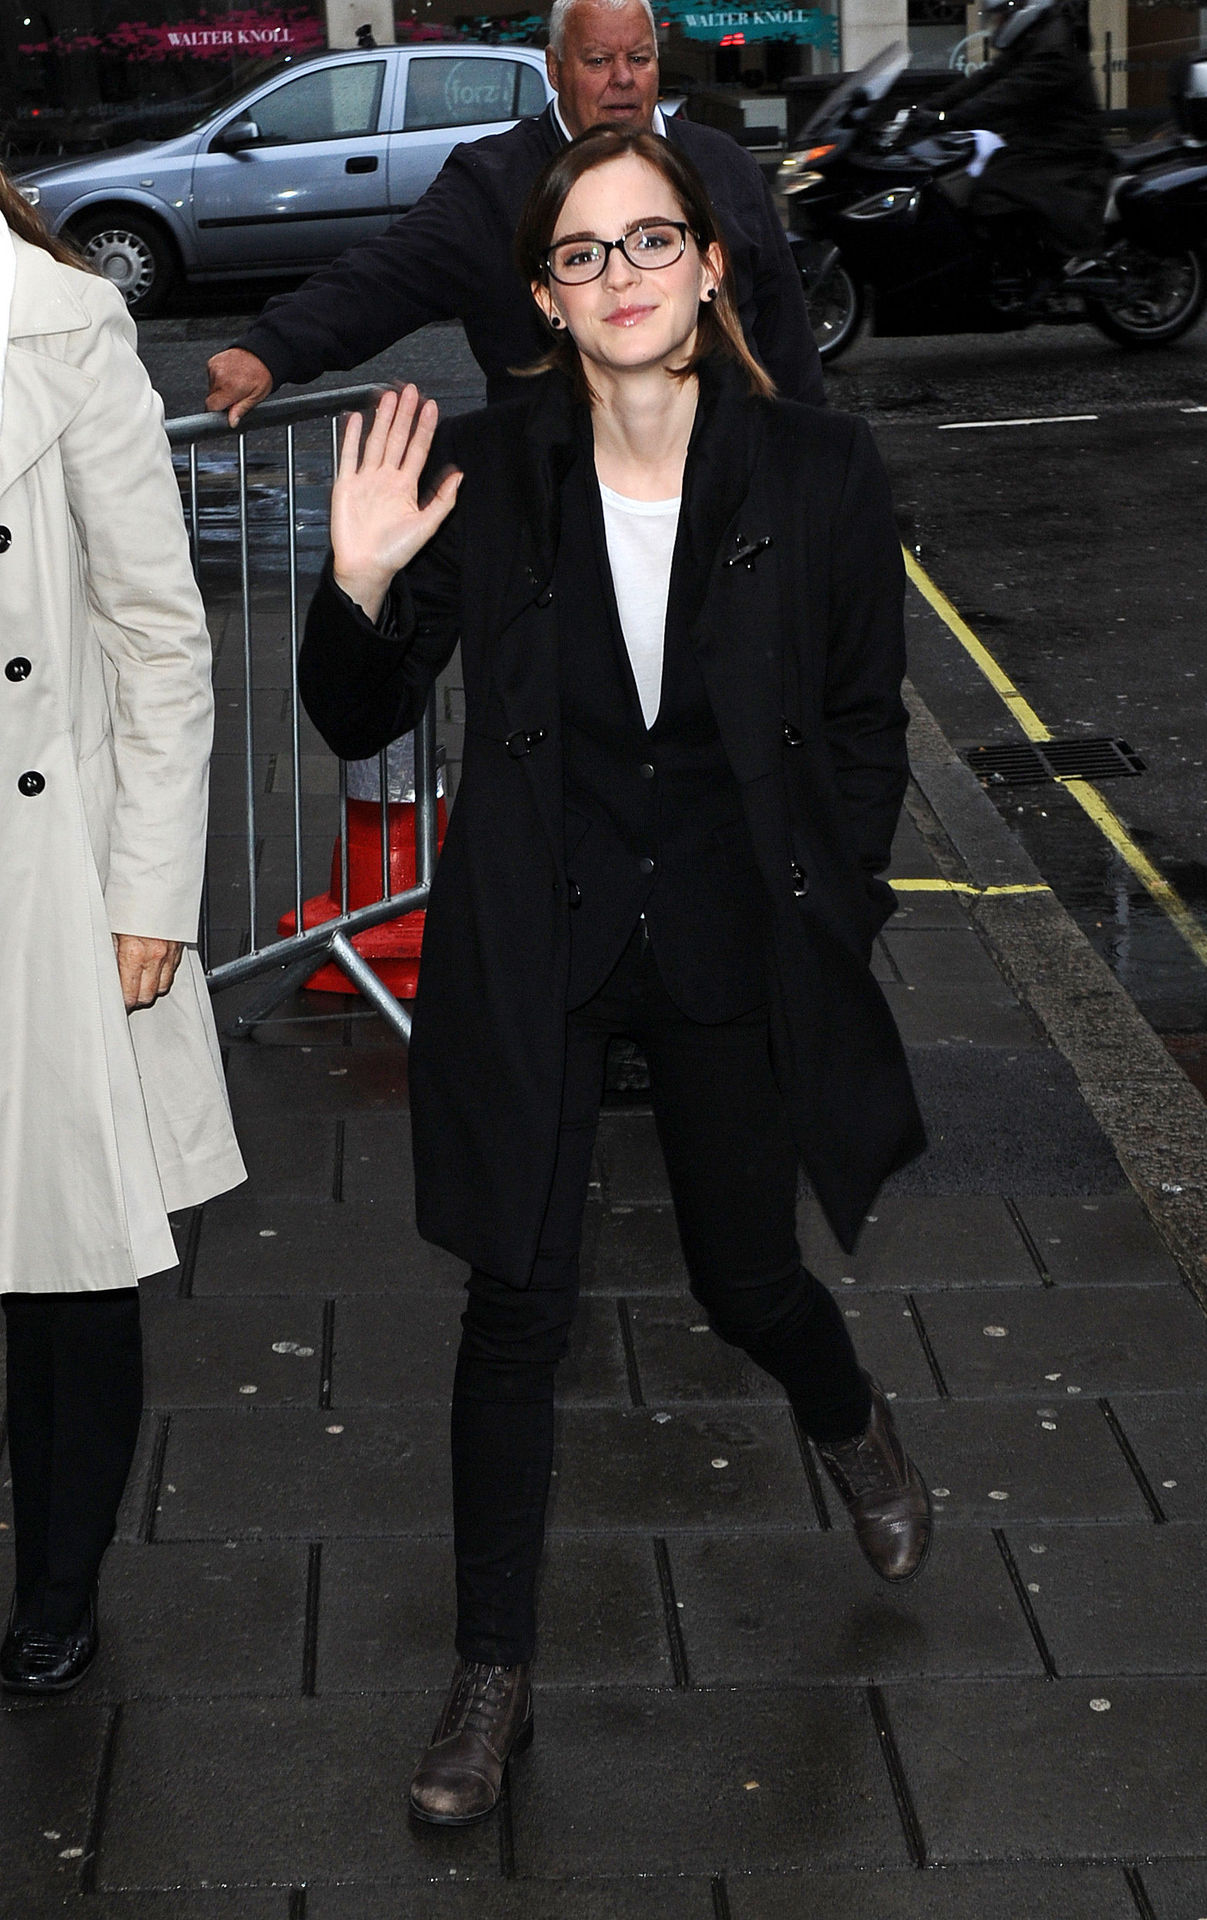 Emma Watson at BBC Radio 1 in London, September 26th ADORKABLE!